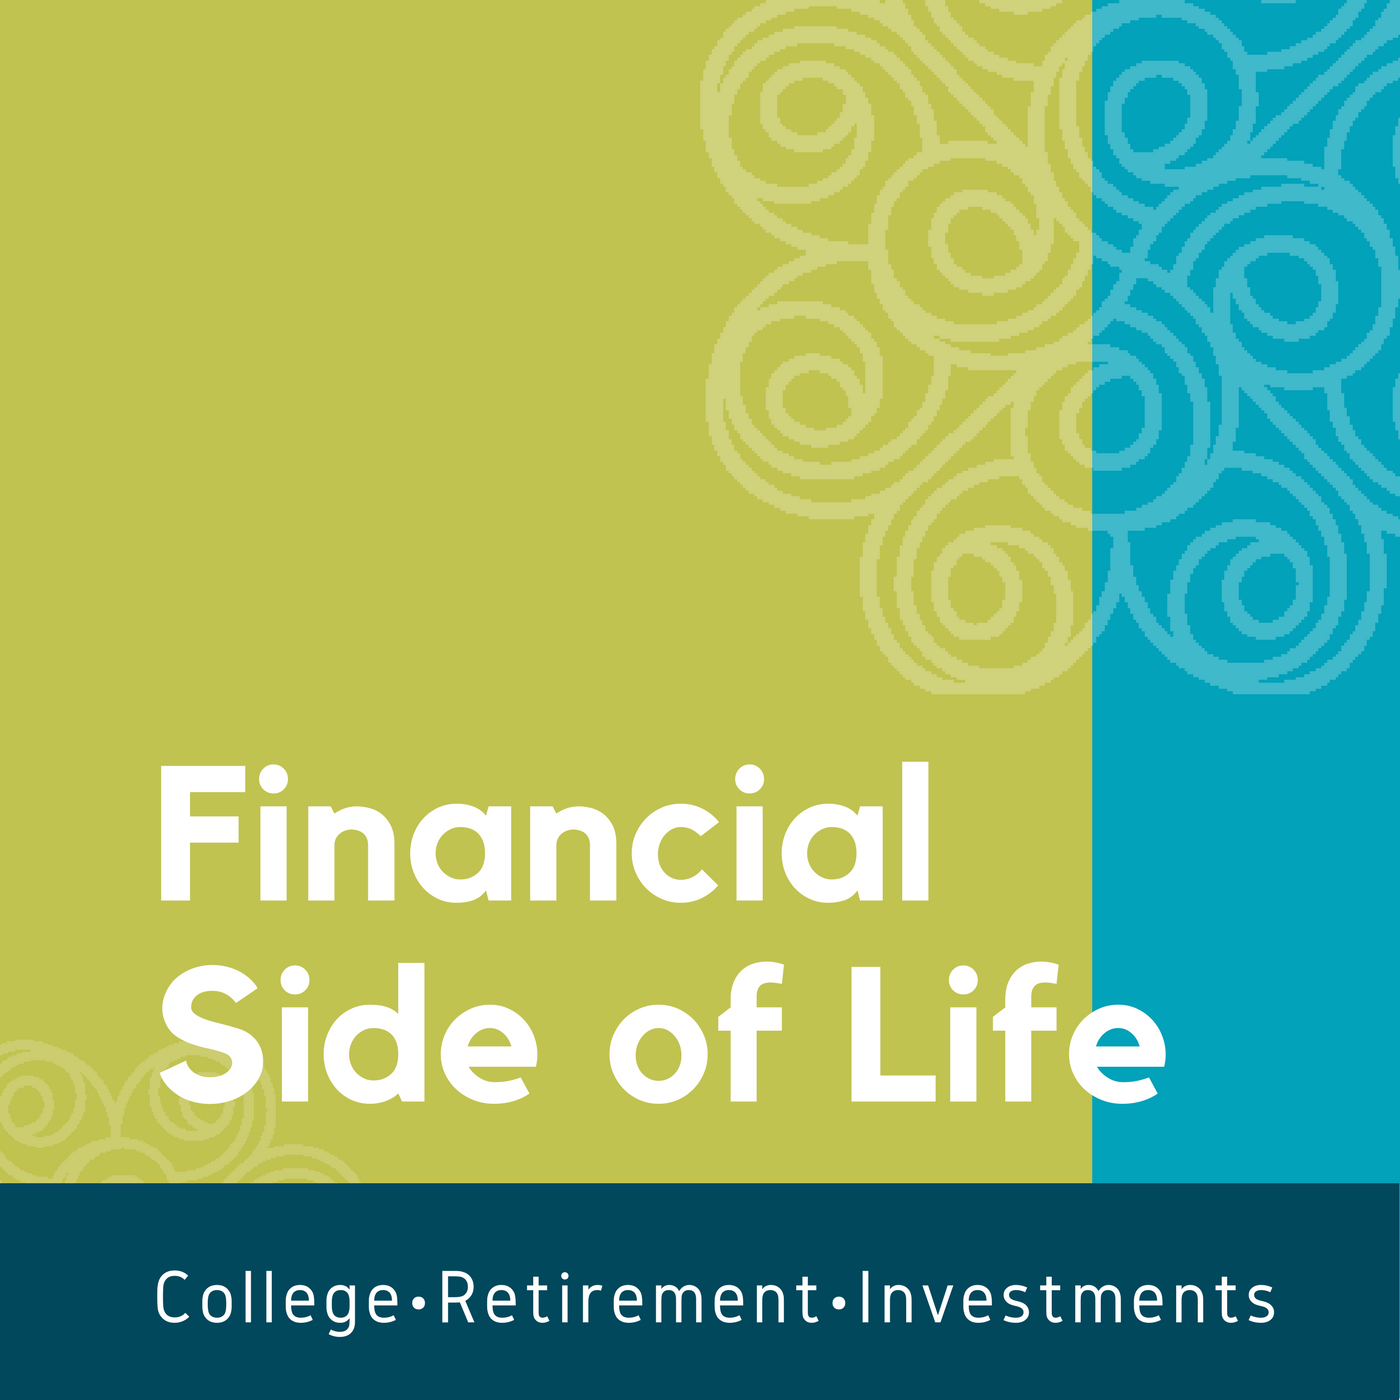 Financial Side of Life